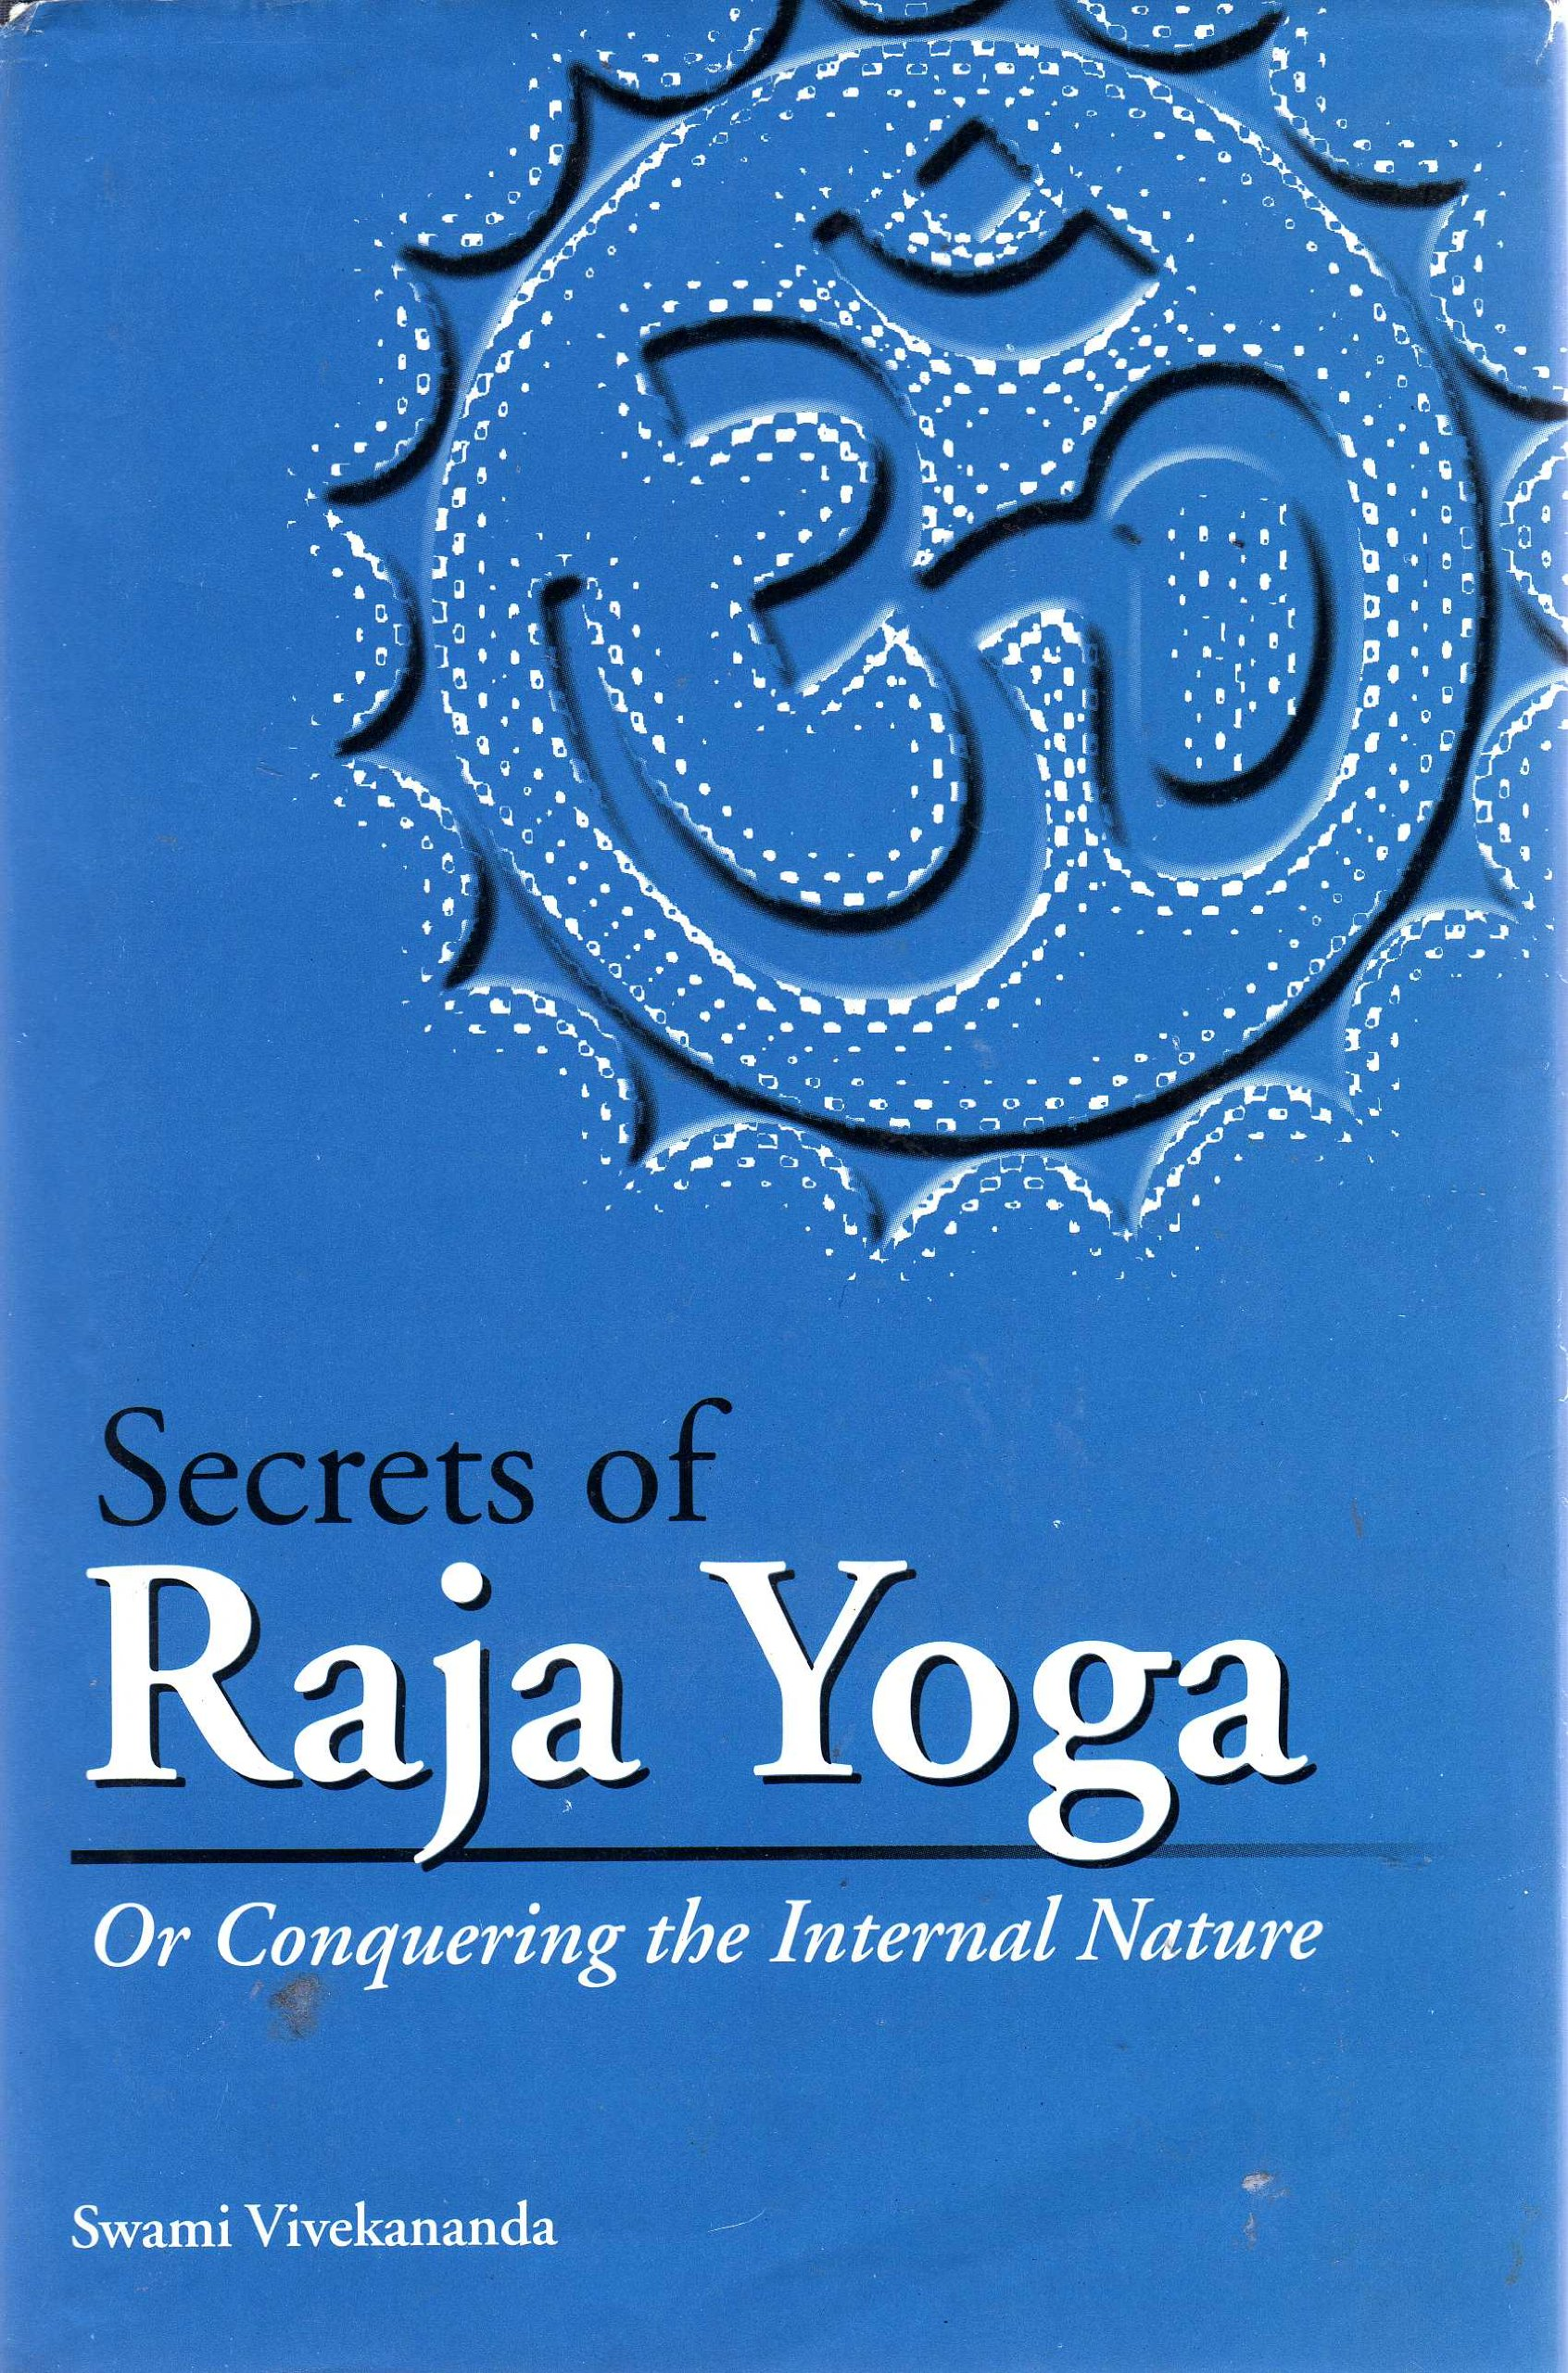 Secrets of Raja Yoga: Amazon.es: Swami Vivekananda: Libros ...